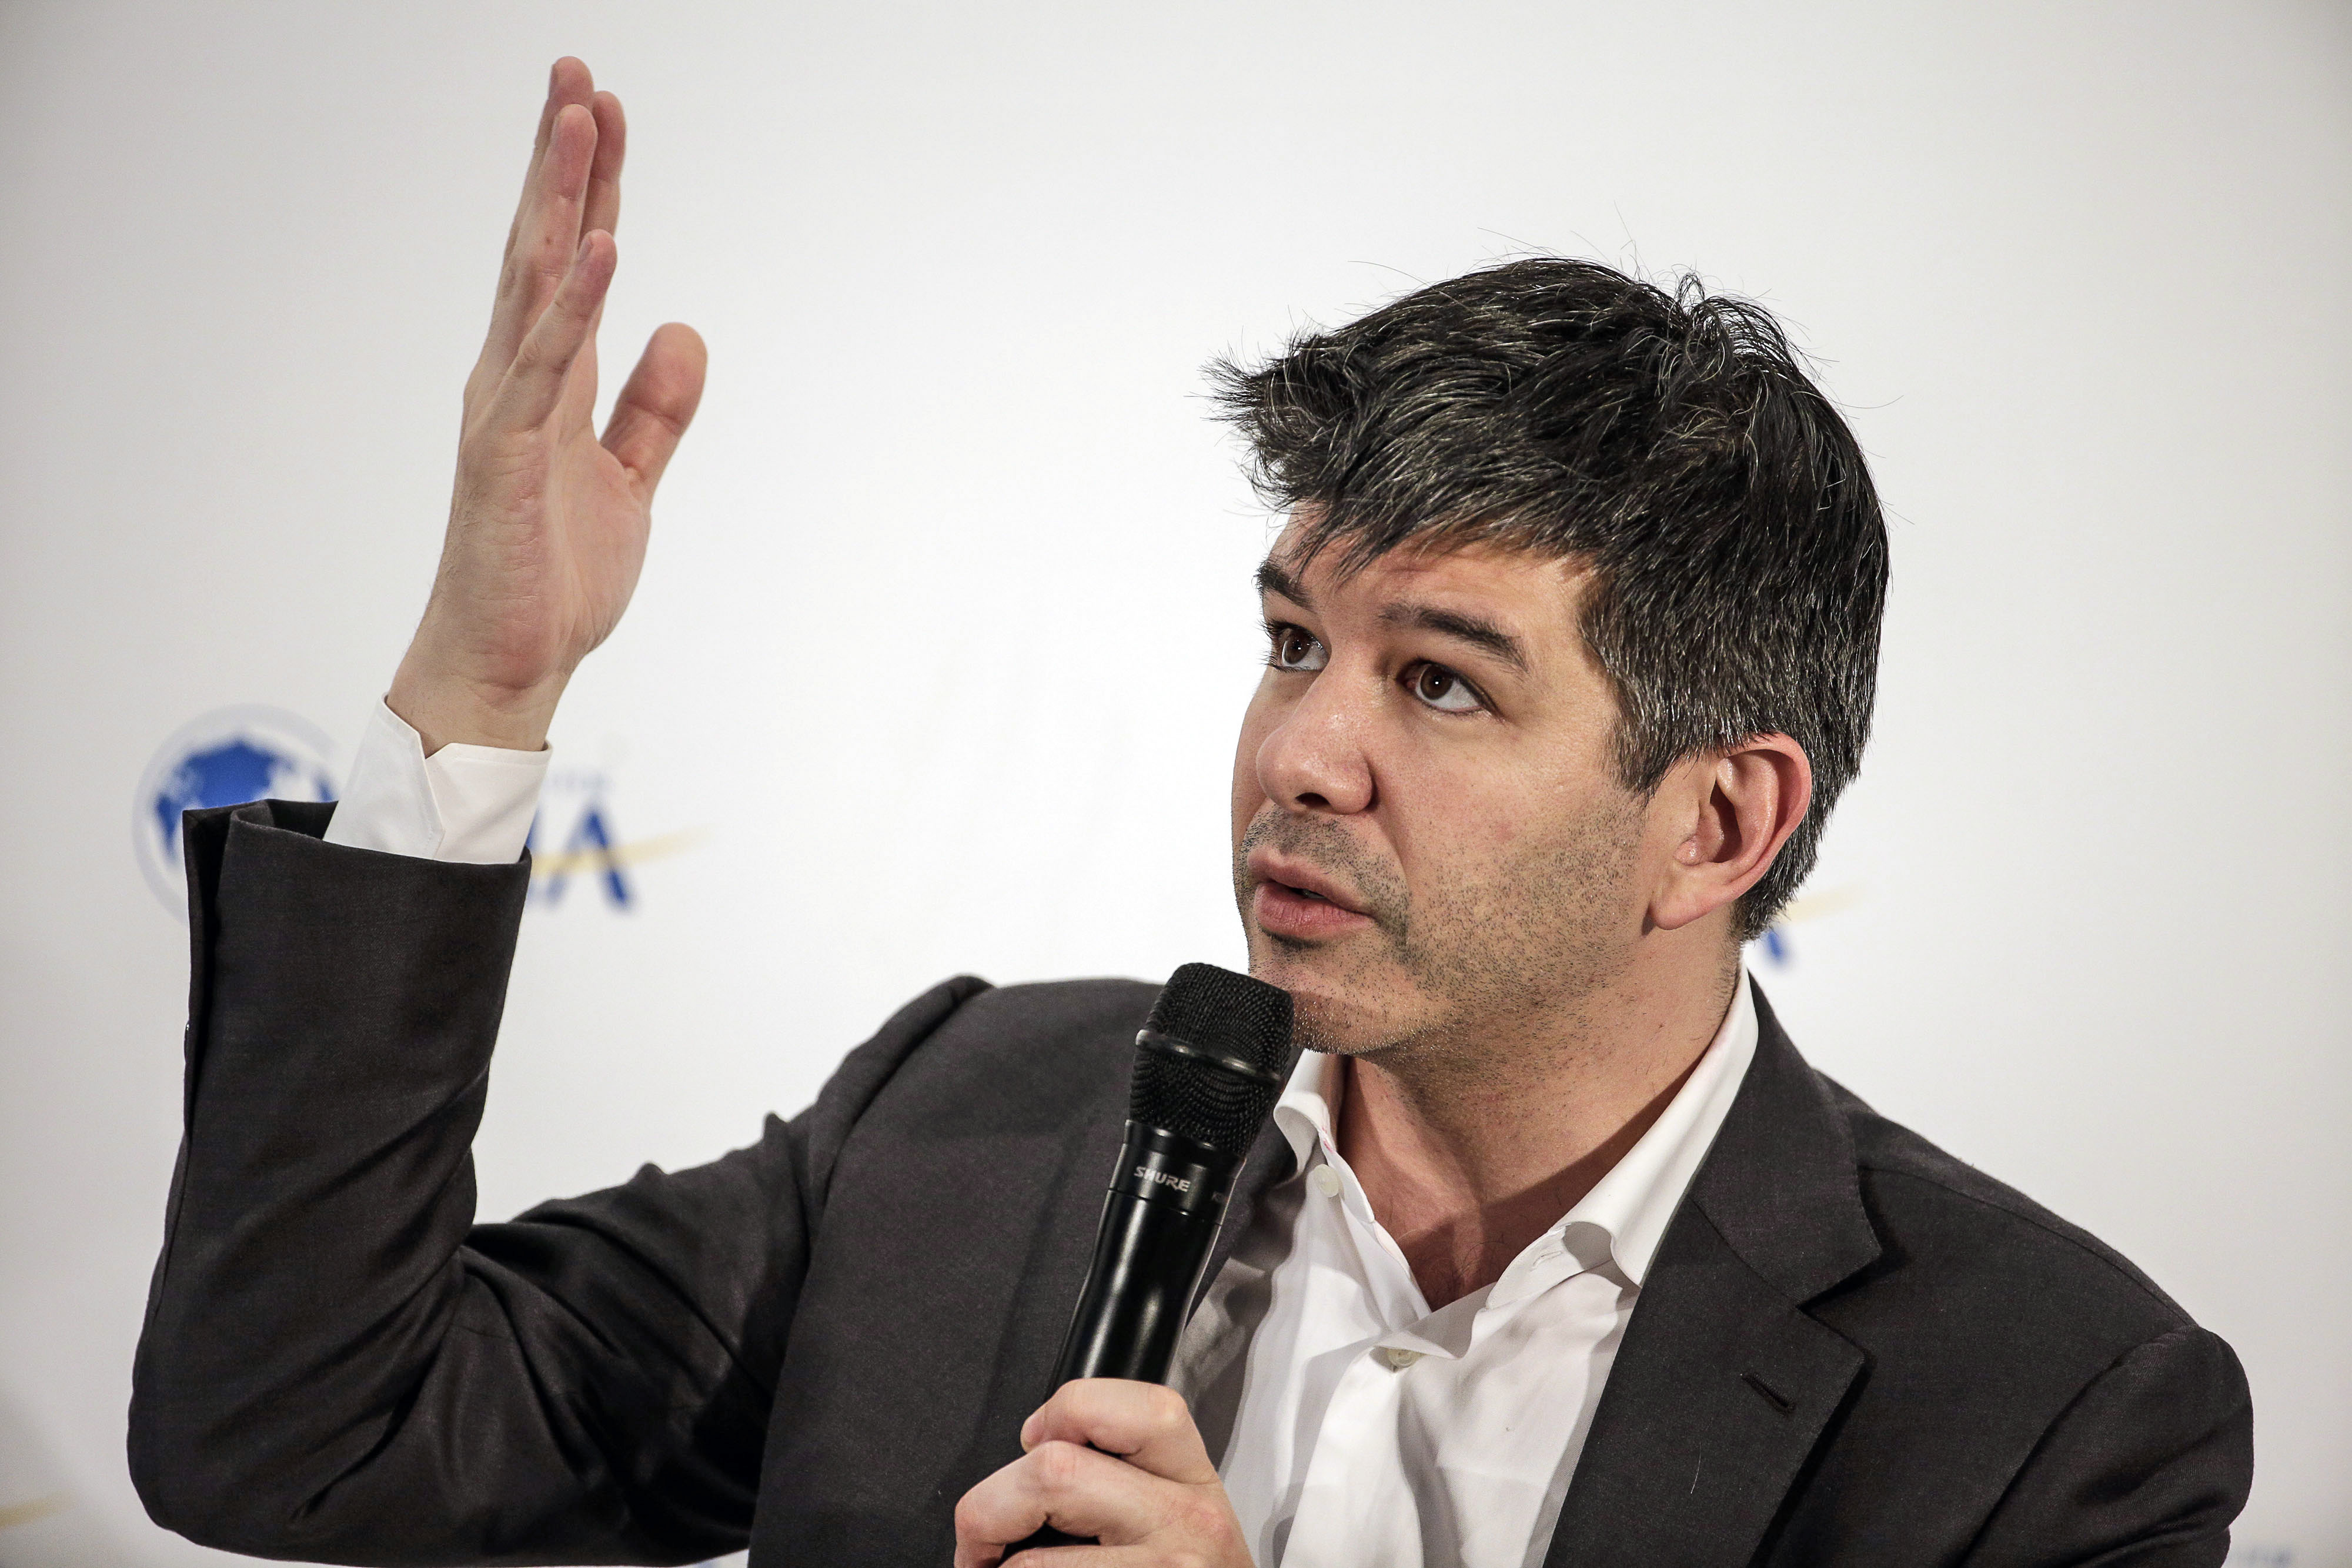 Travis Kalanick at the Asia Annual Conference in Boao, China, on Wednesday, March 23, 2016.